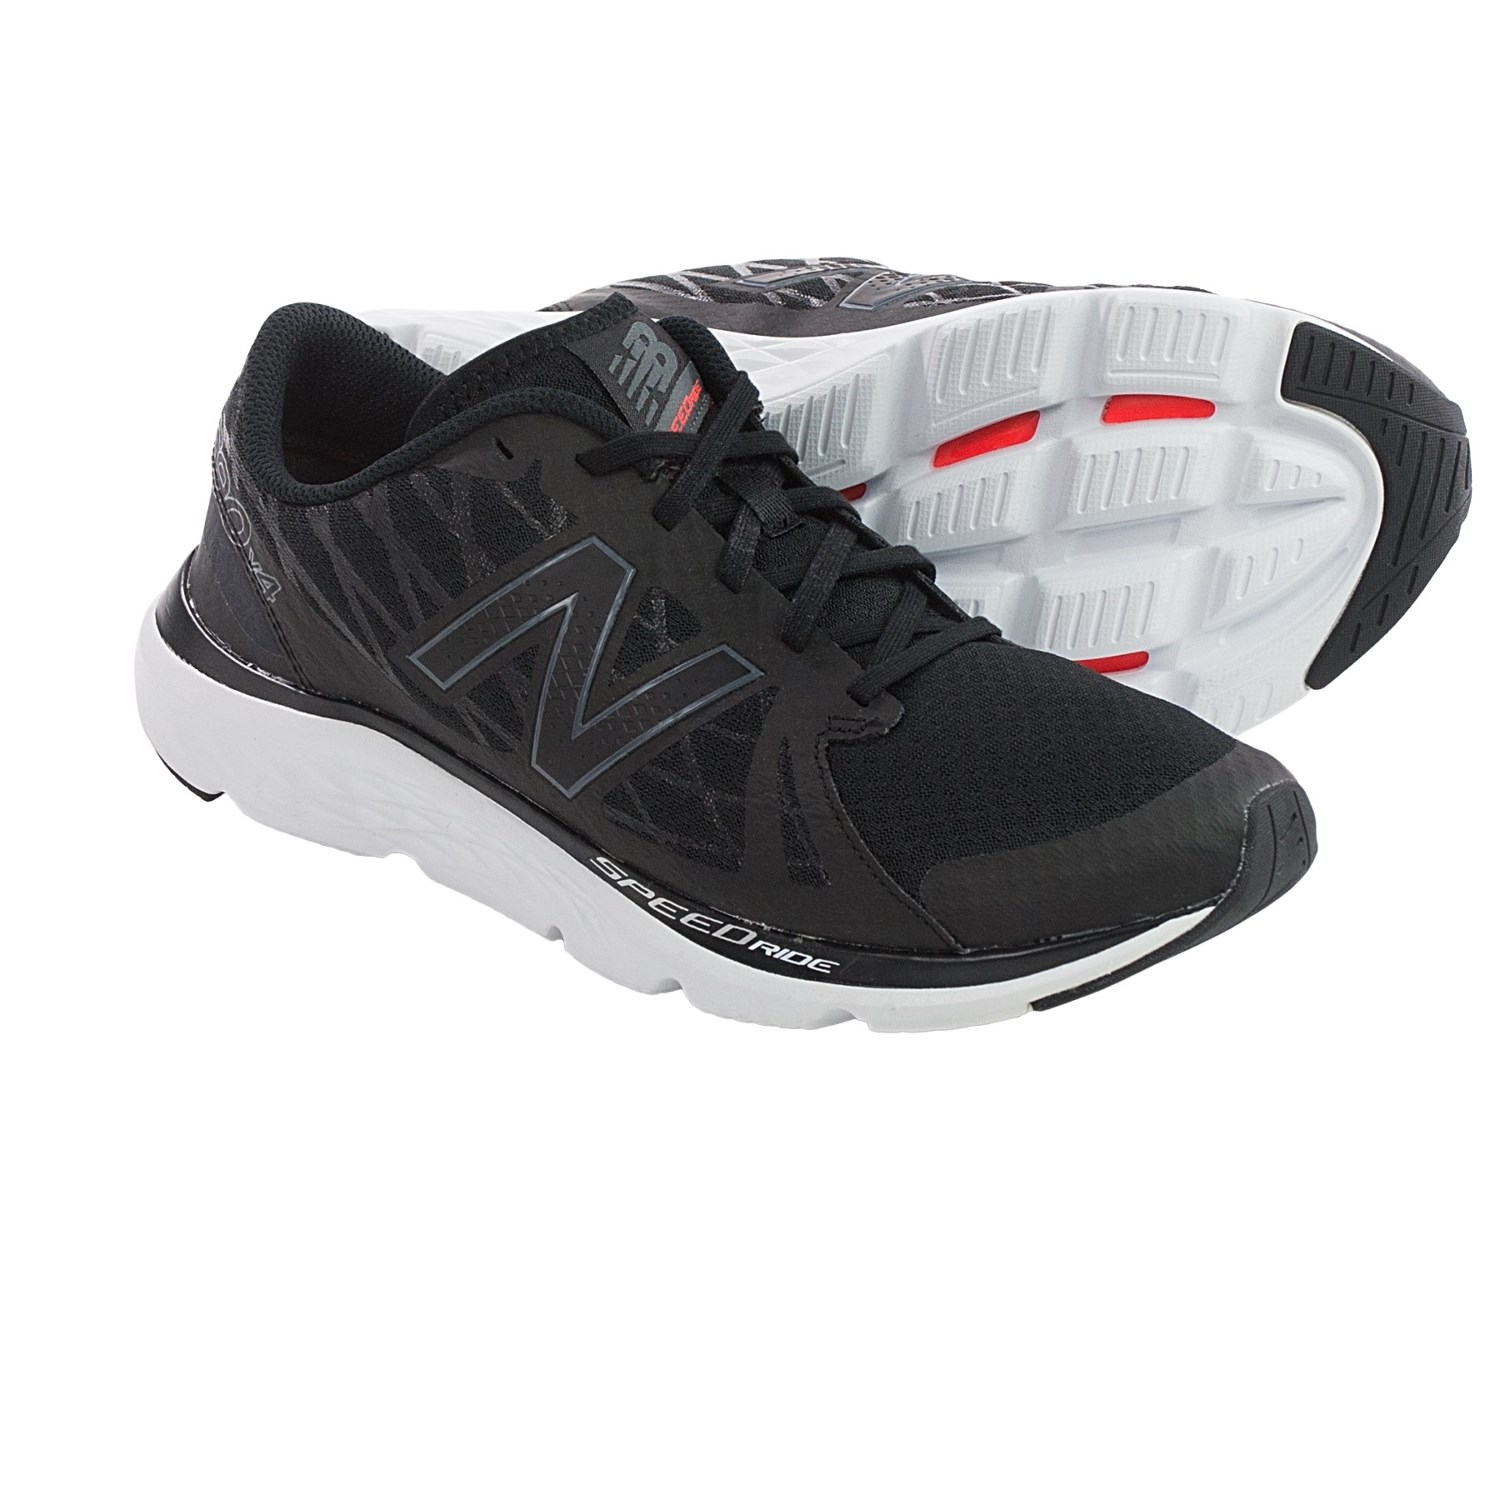 later hot sale exquisite design Cheap new balance 690 mens Buy Online >OFF61% Discounted